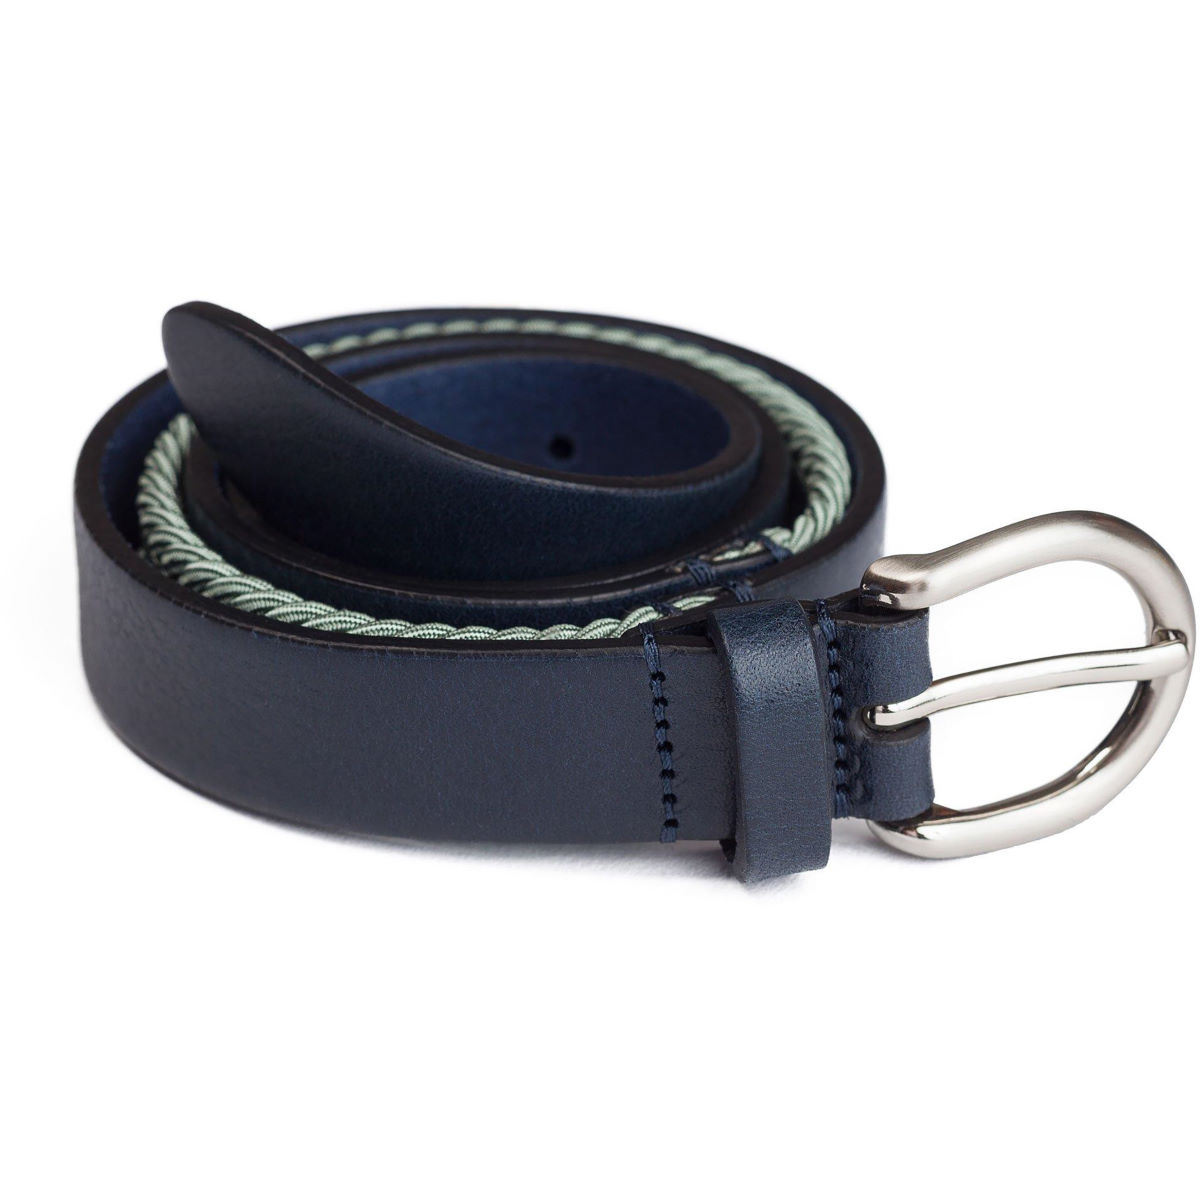 Rapha Women's Belt - Cinturones